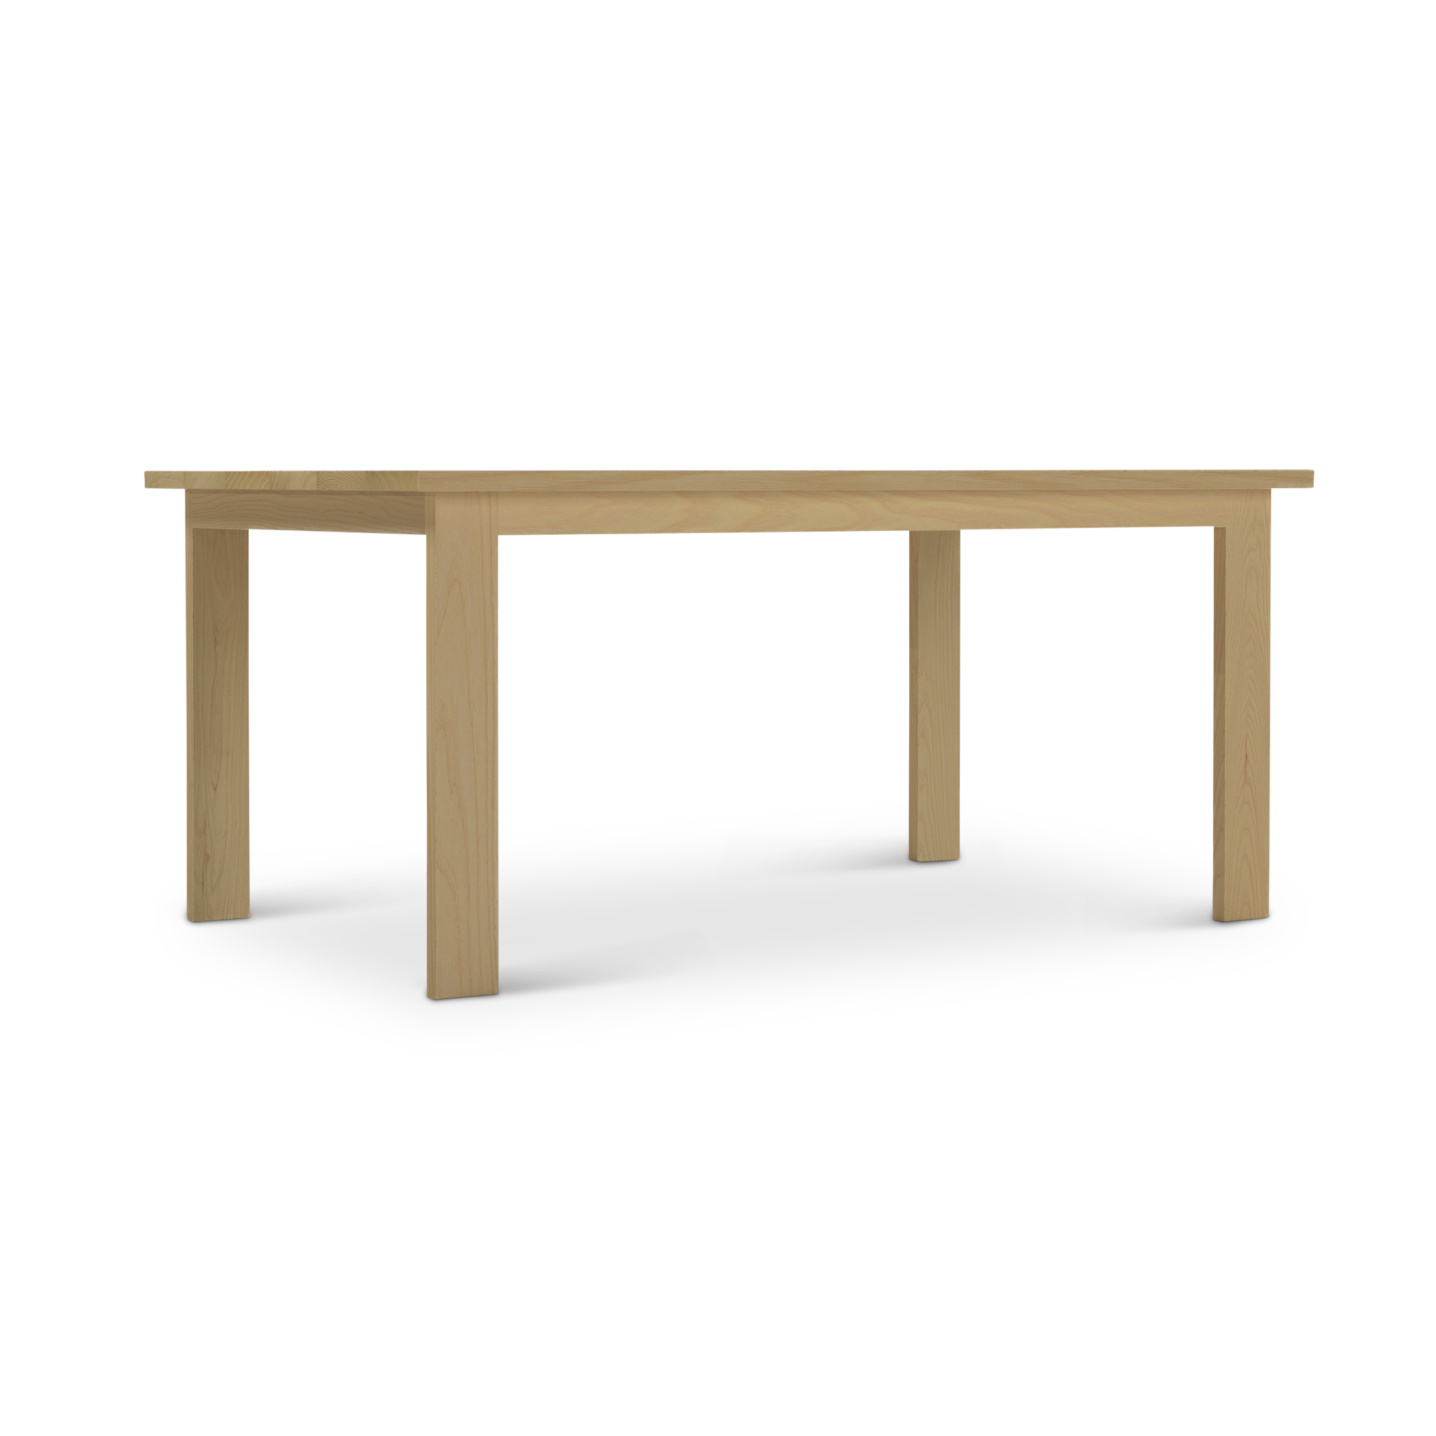 Solid Ash kitchen table made in Ohio